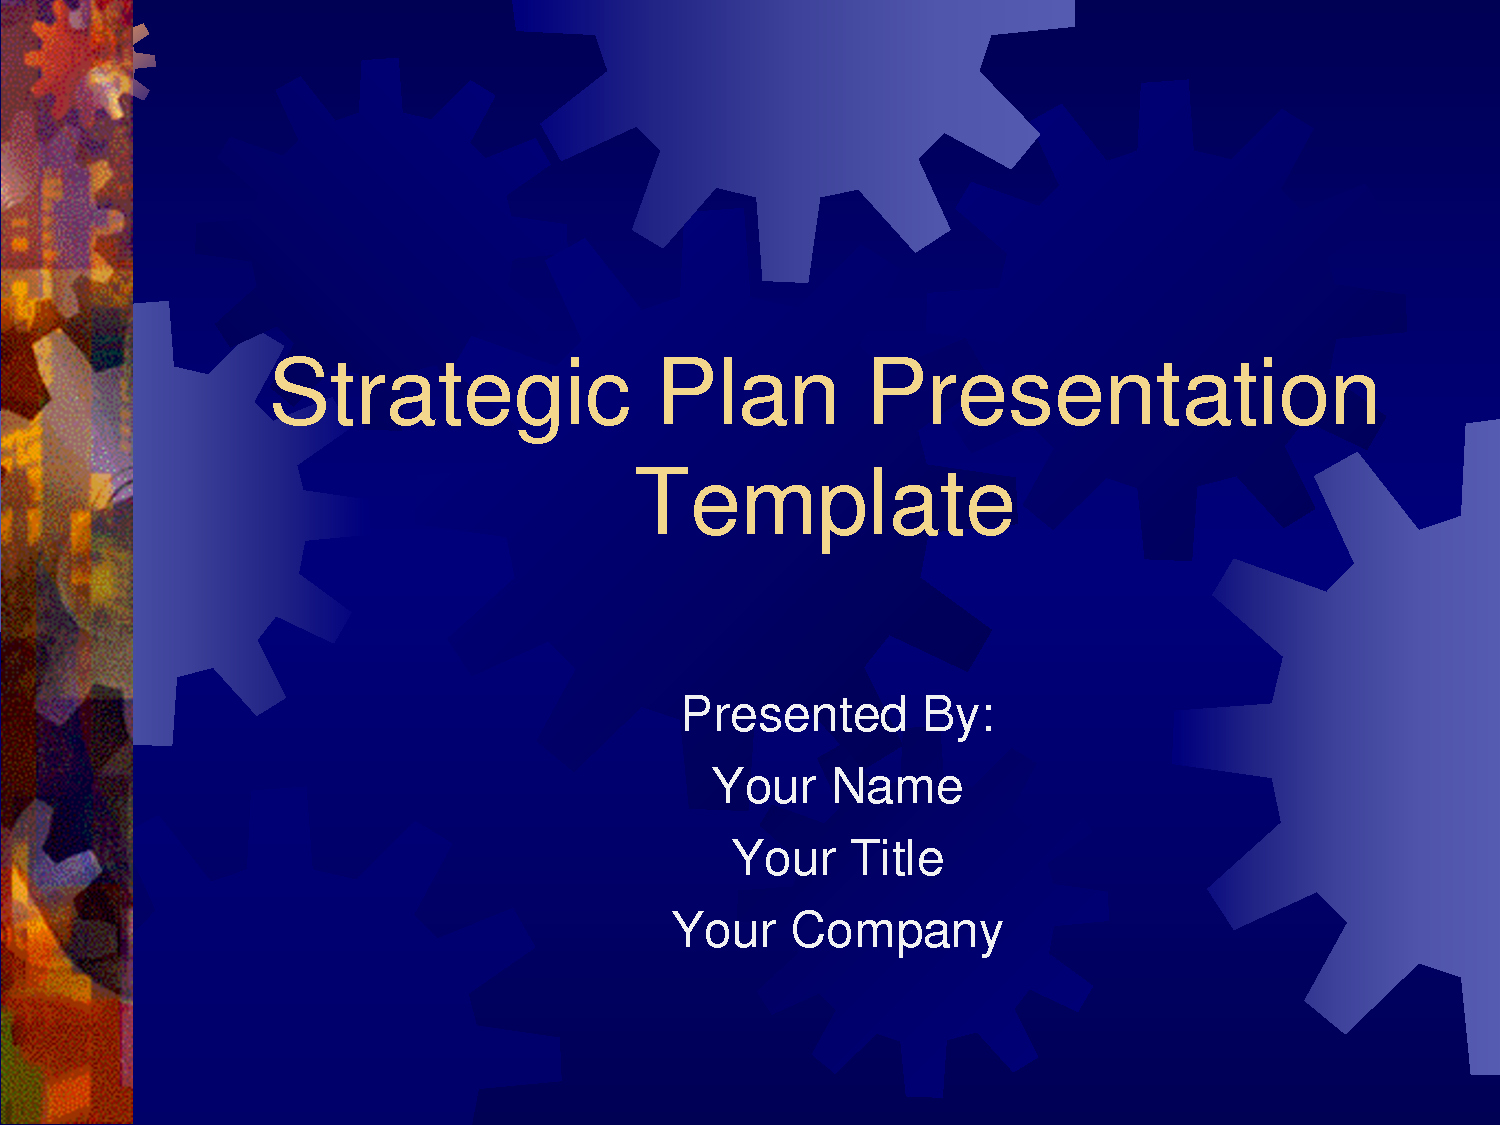 Business Plan Powerpoint Template Free Awesome Strategic Plan Powerpoint Templates Business Plan